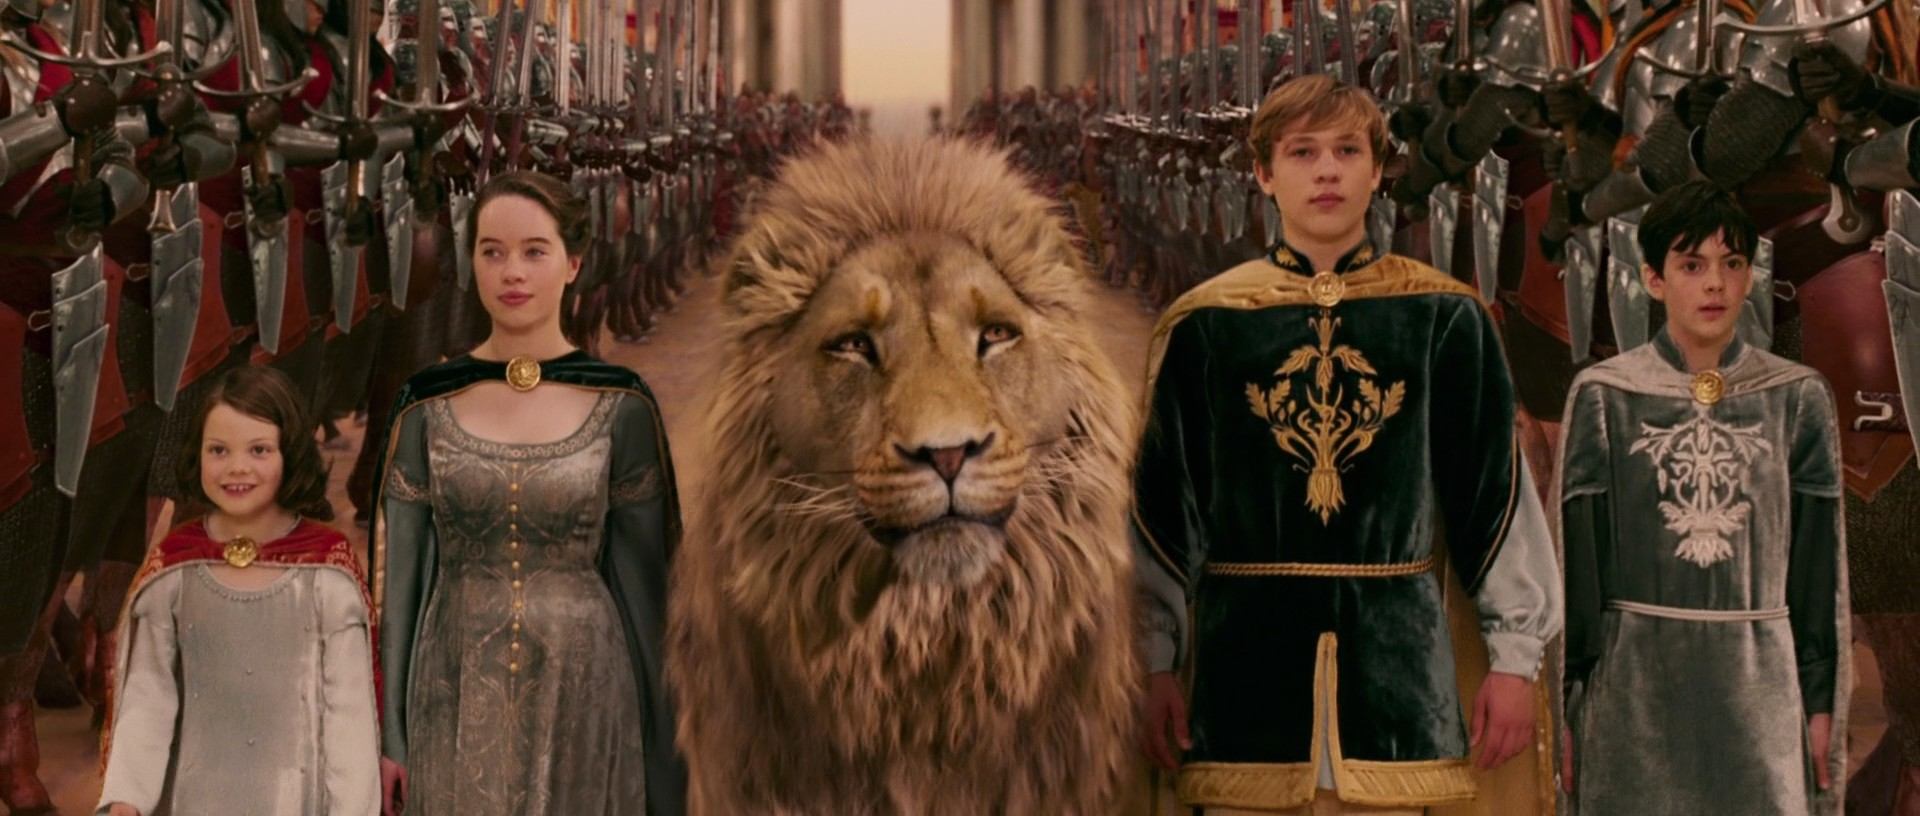 12 DAYS OF CHRISTMAS REVIEW: THE CHRONICLES OF NARNIA: THE LION ...